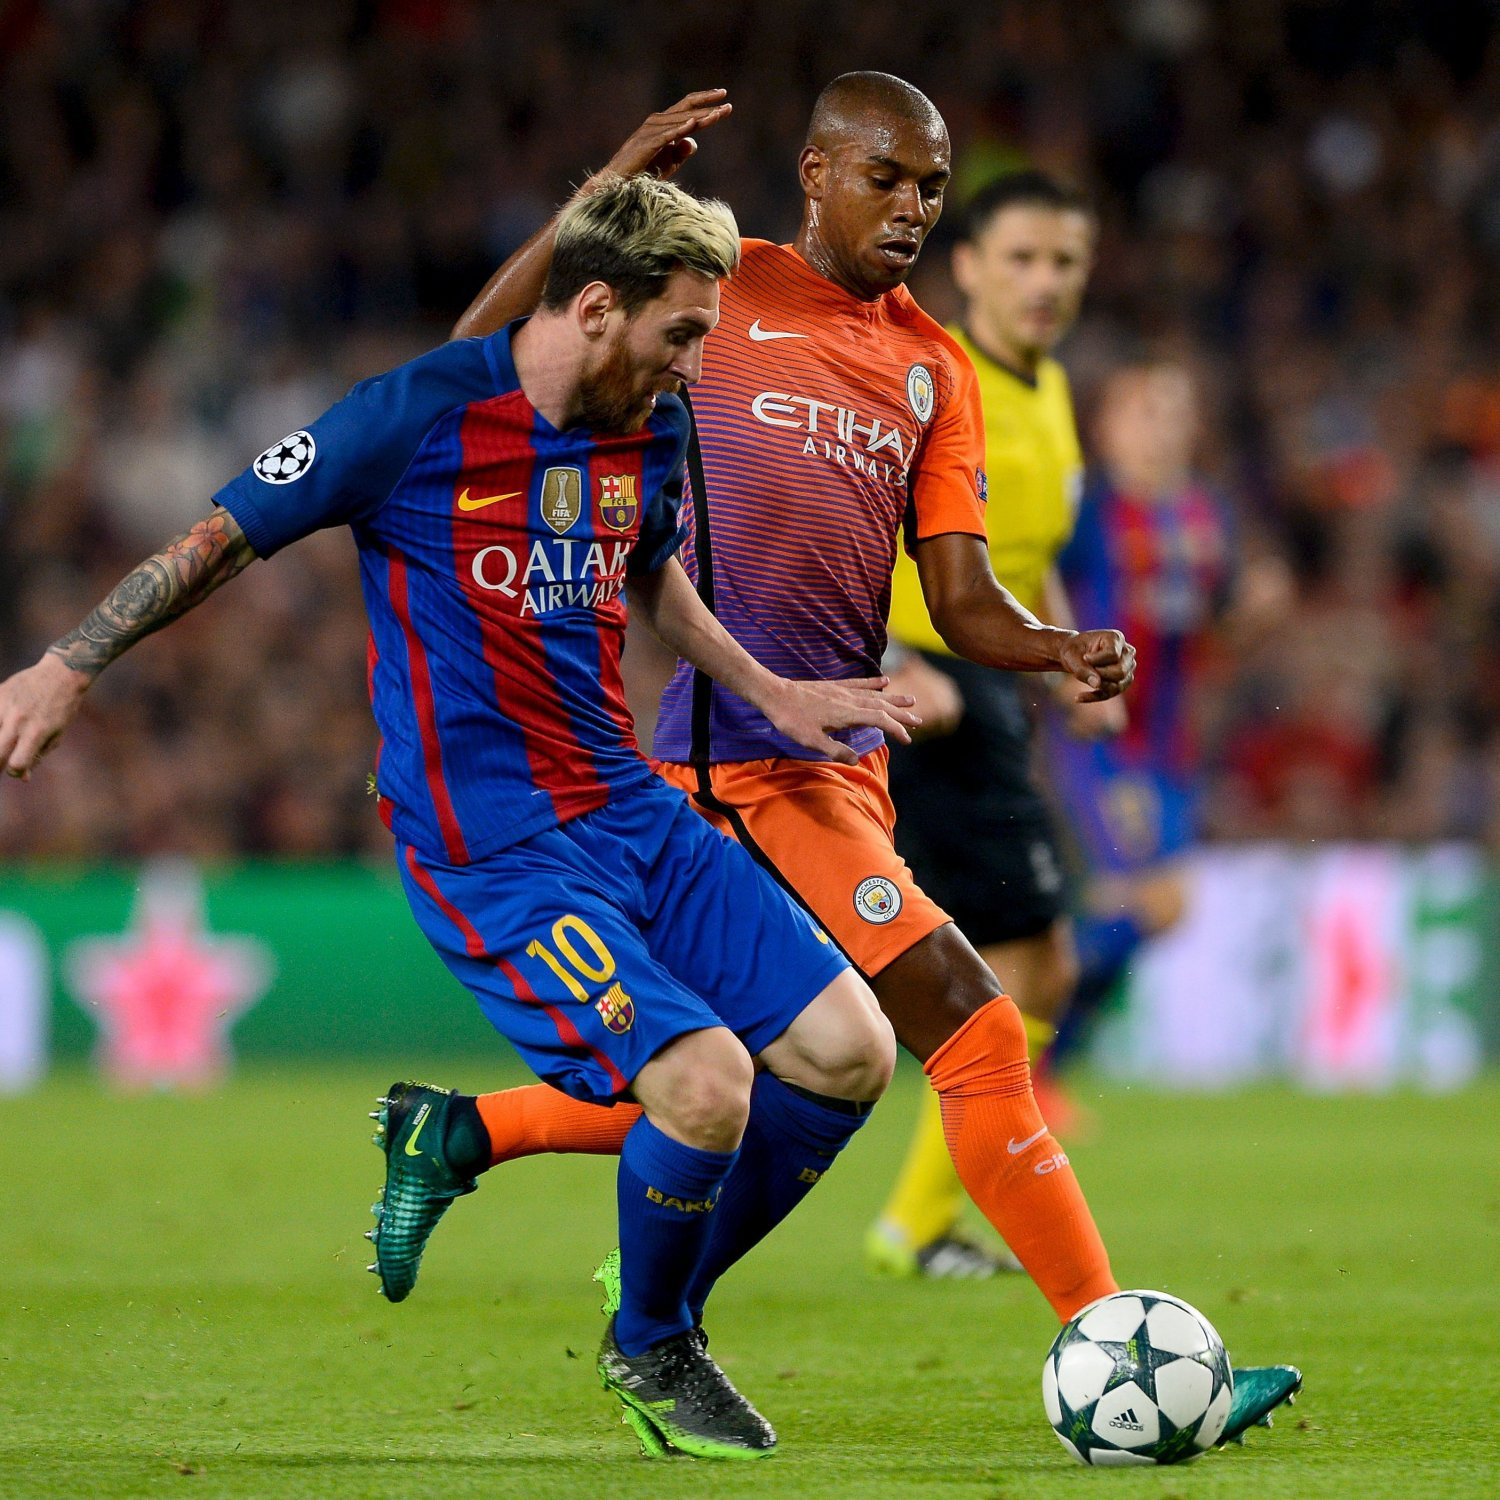 Psg Vs Manchester City Live Score Highlights From: Barcelona Vs. Manchester City: Live Score, Highlights From